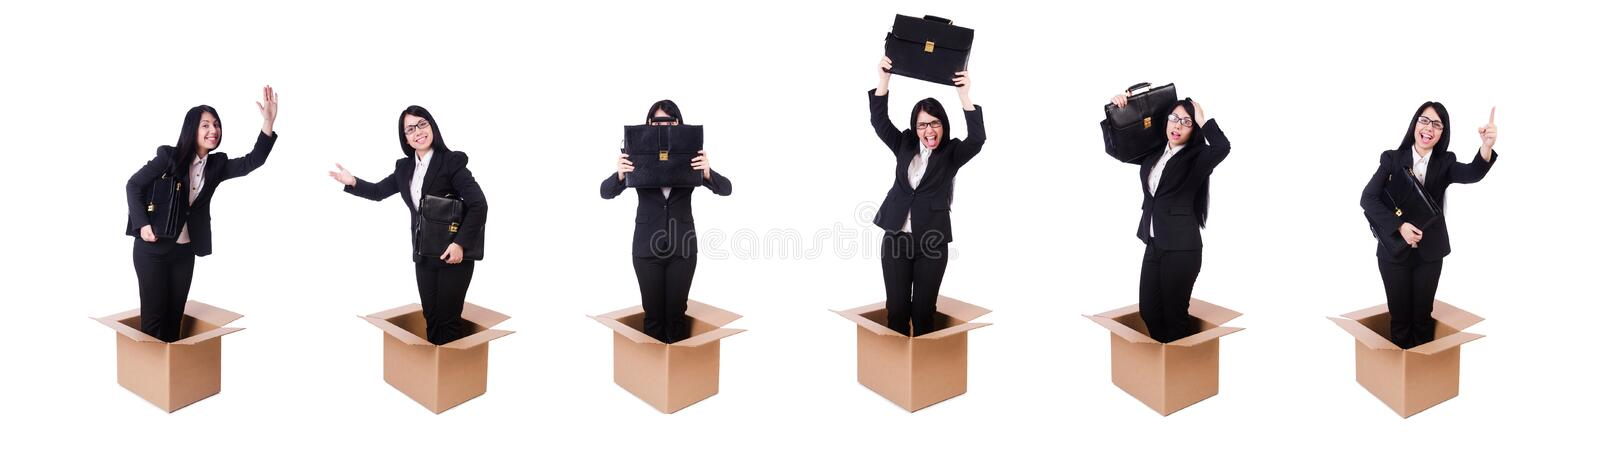 Businesswoman in thinking out of box concept stock photos